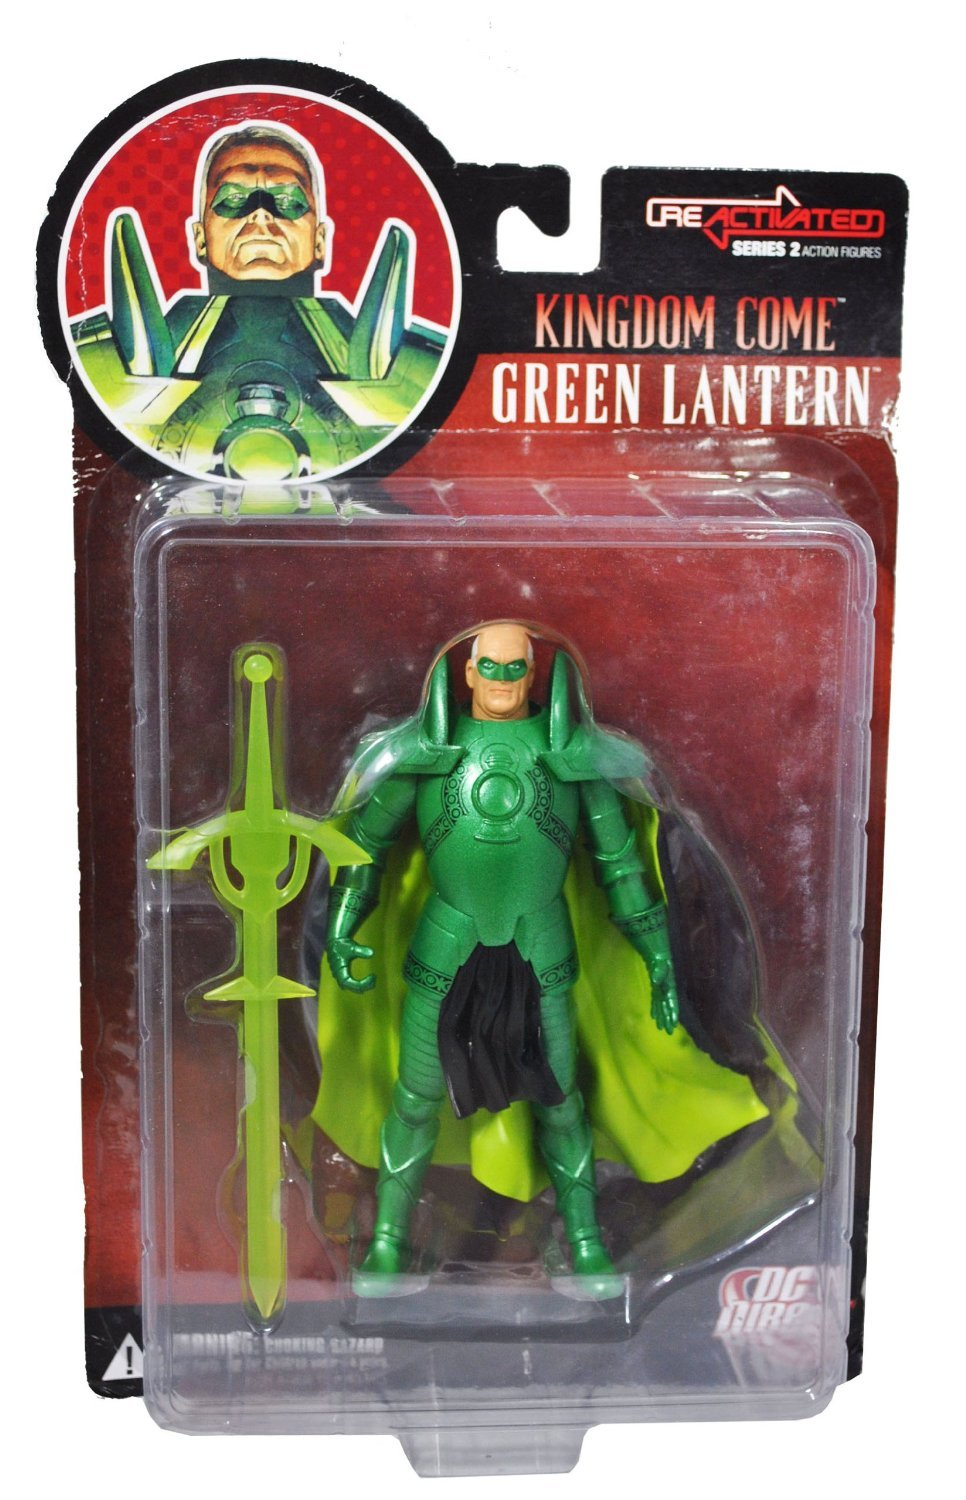 Reactivated Series 2: Kingdom Come Green Lantern Action Figure